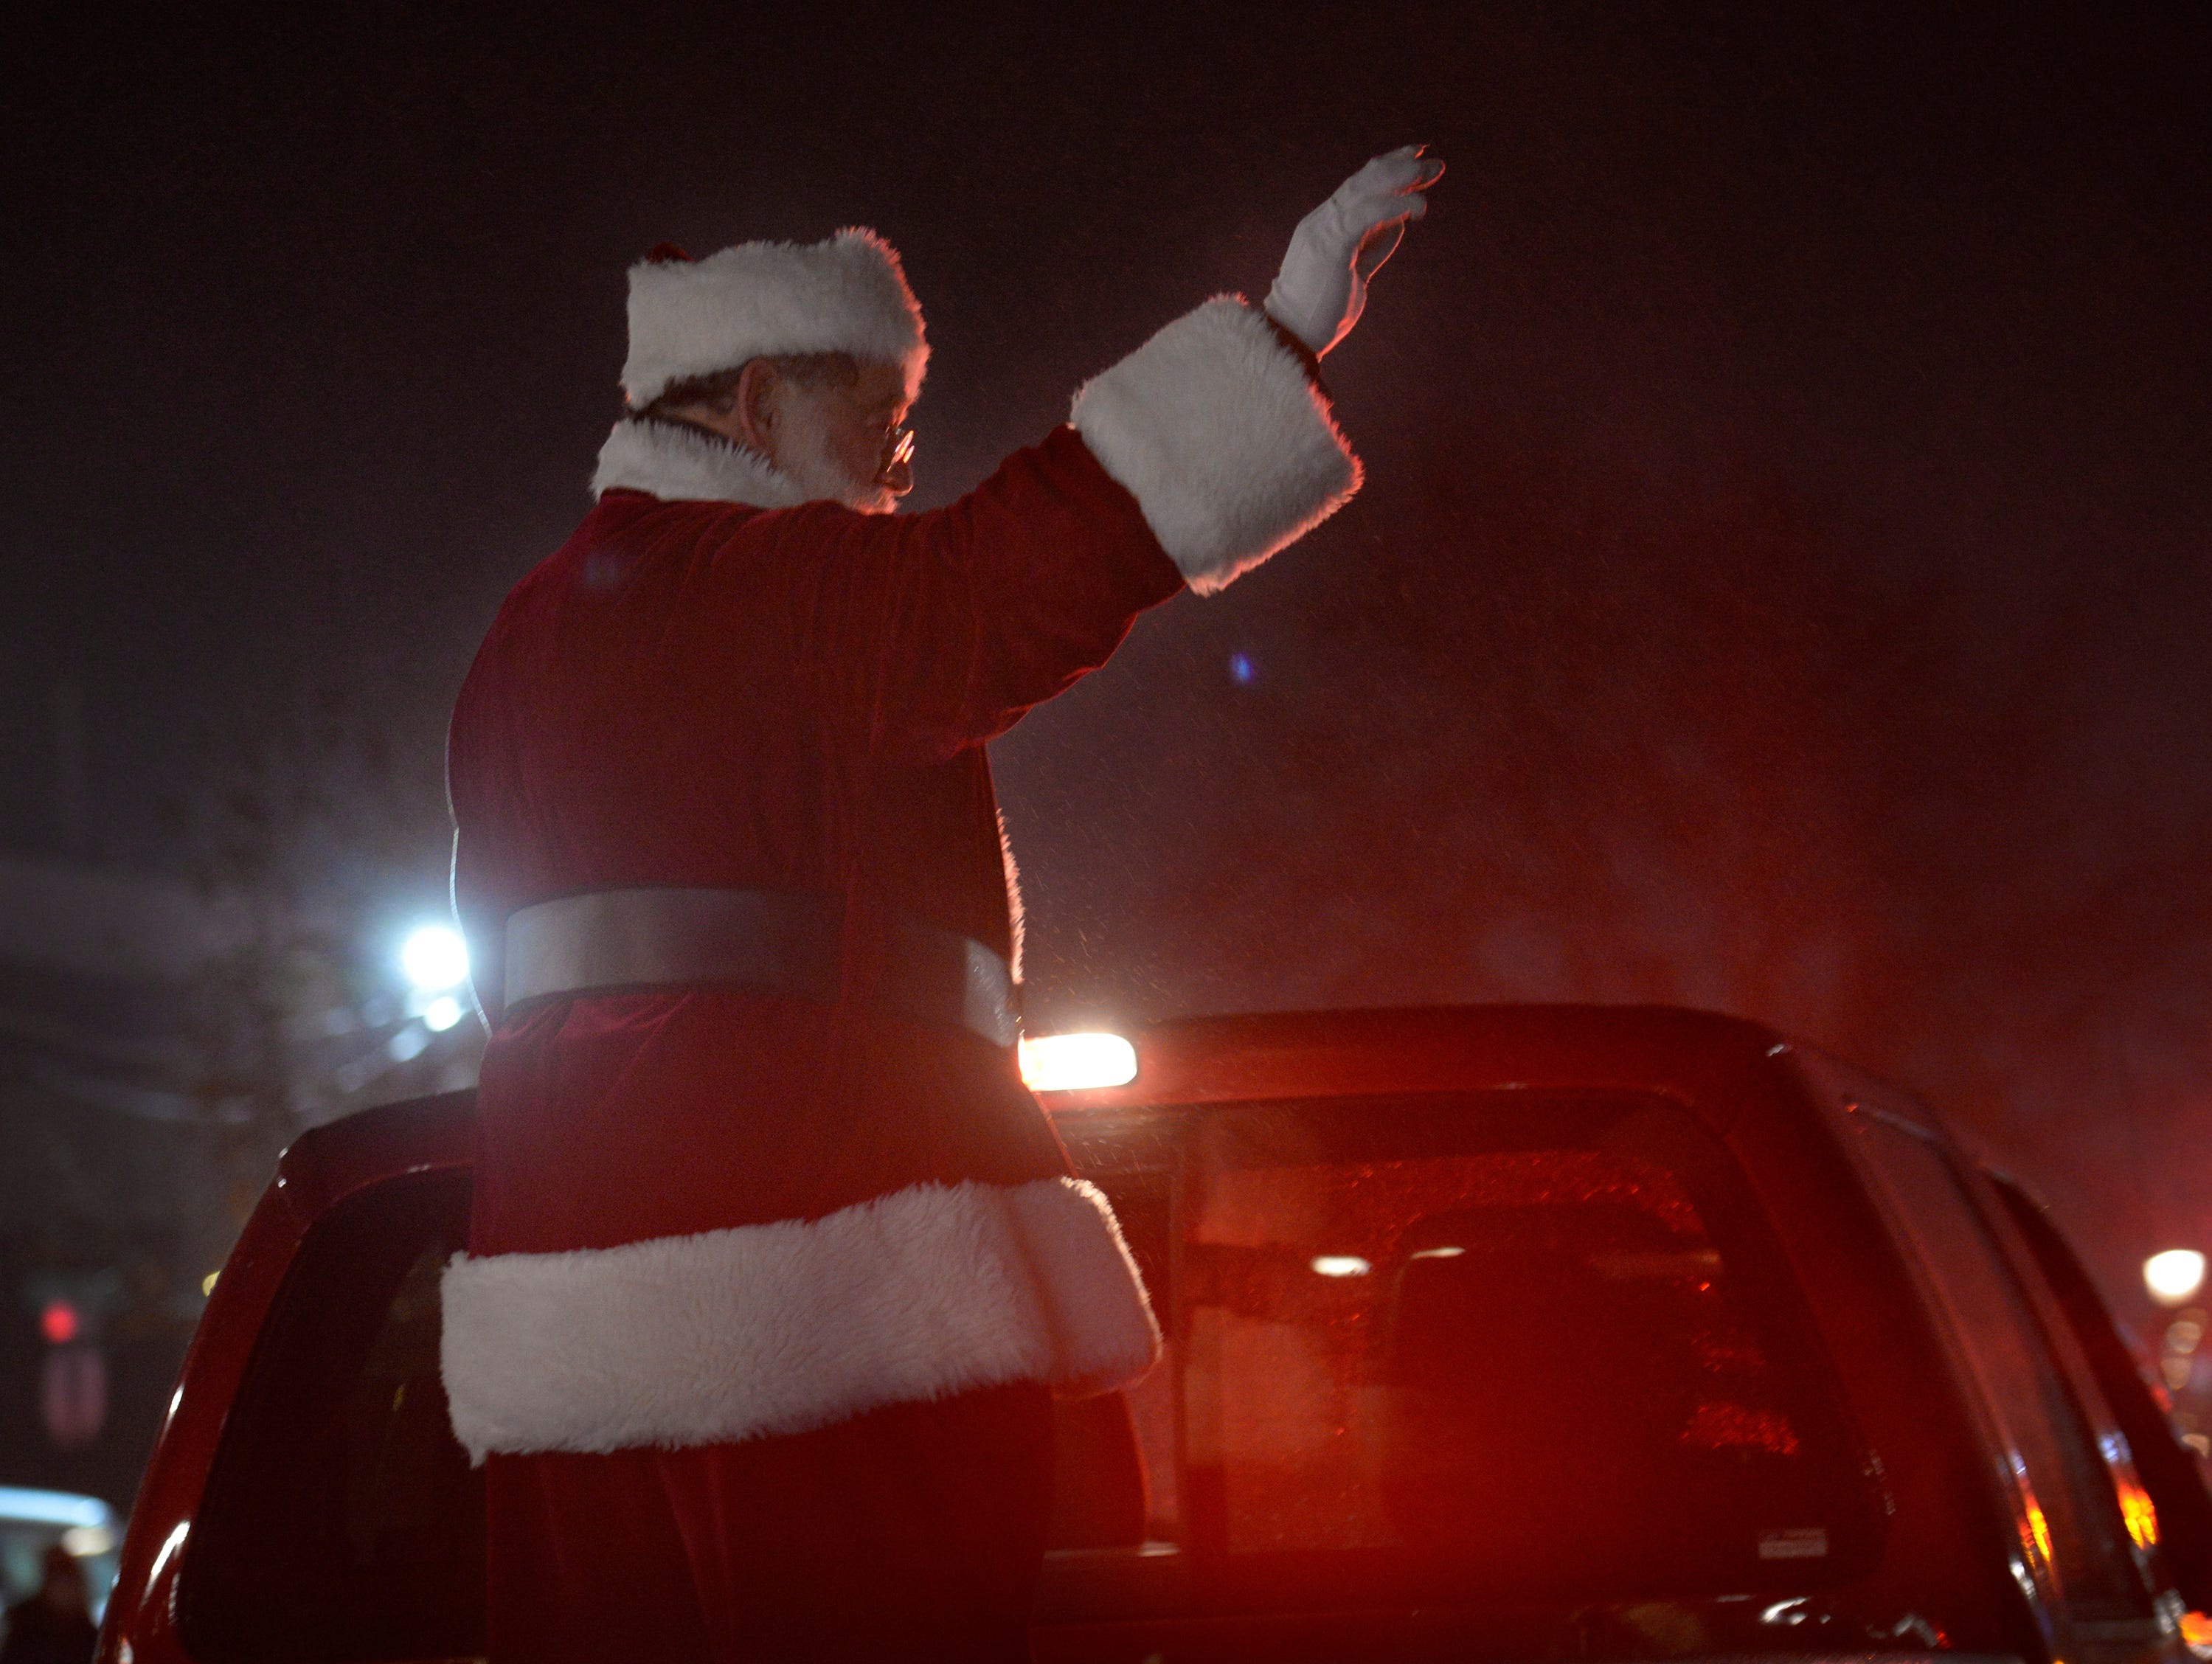 Santa makes his way down Lafayette Street during the Lighted Parade as part of South Lyon's Cool Yule celebration Dec. 1, 2018.